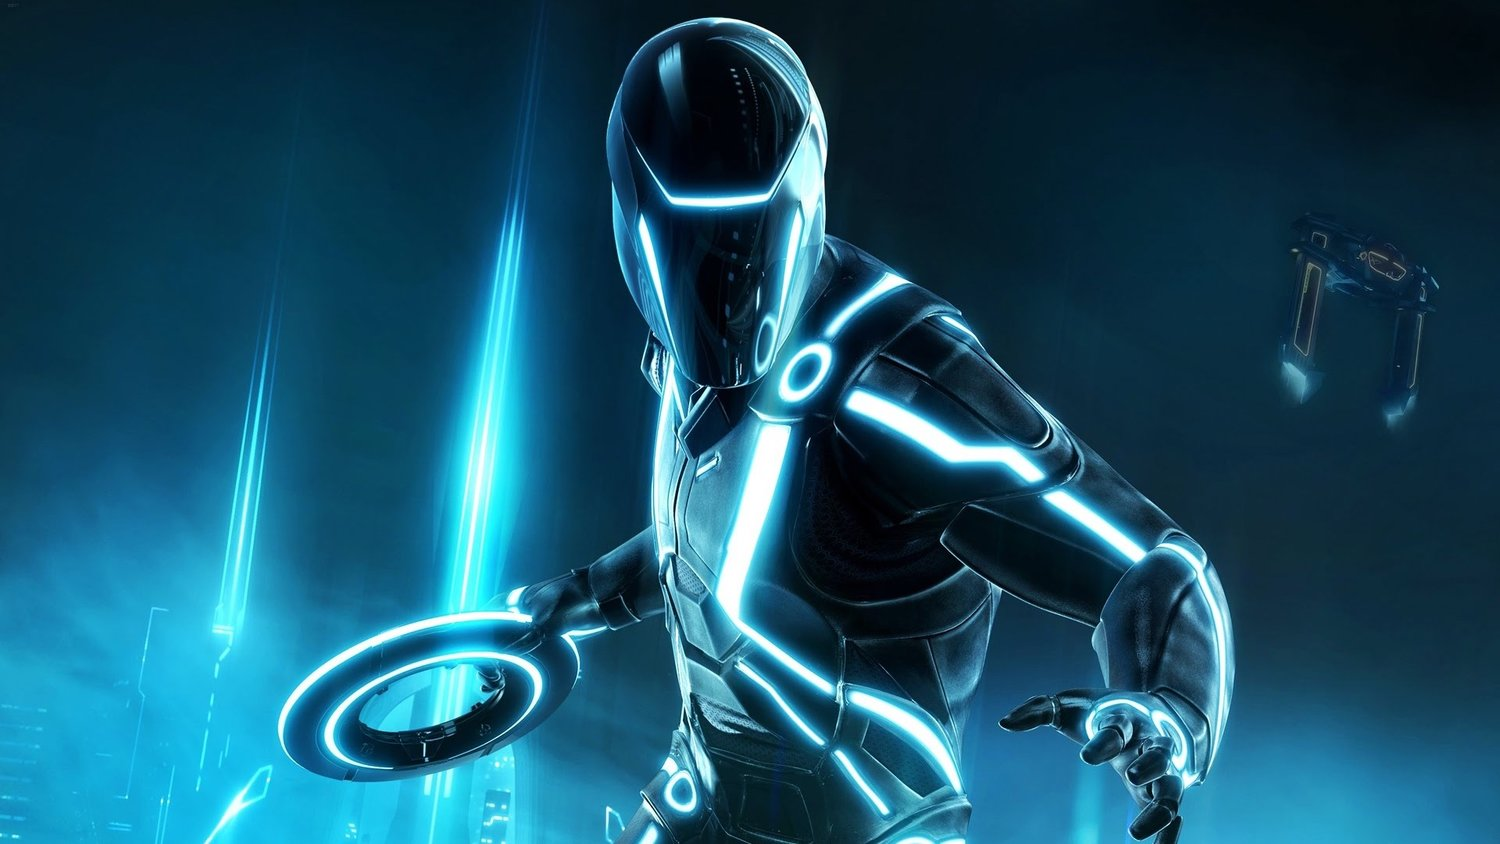 Disney is Looking to Reboot TRON with Jared Leto